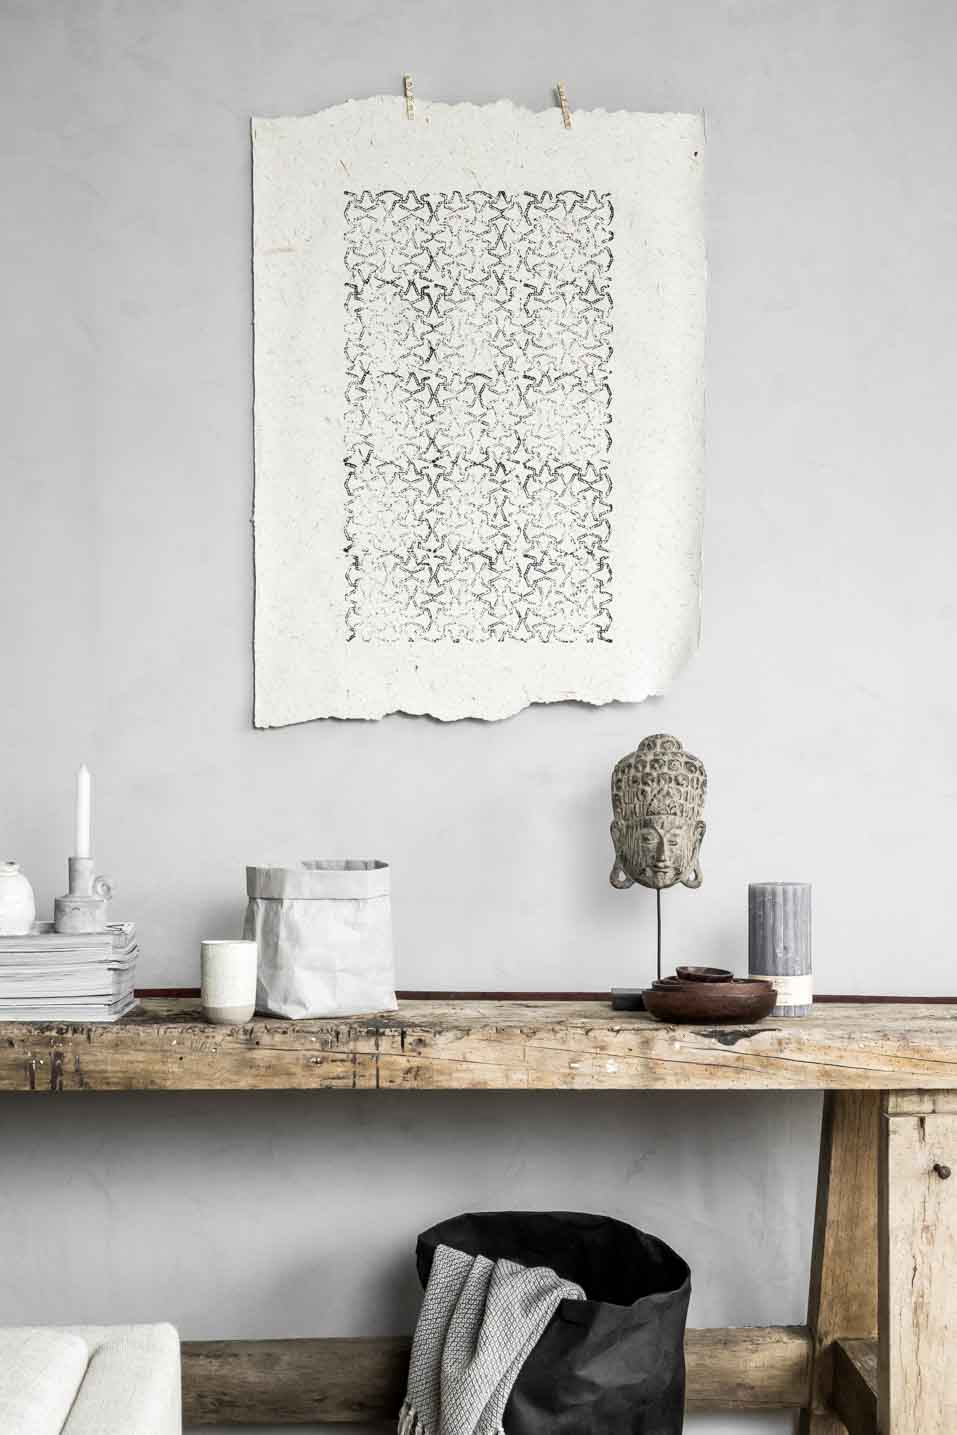 Concrete look with colournuance in Marrakech Walls